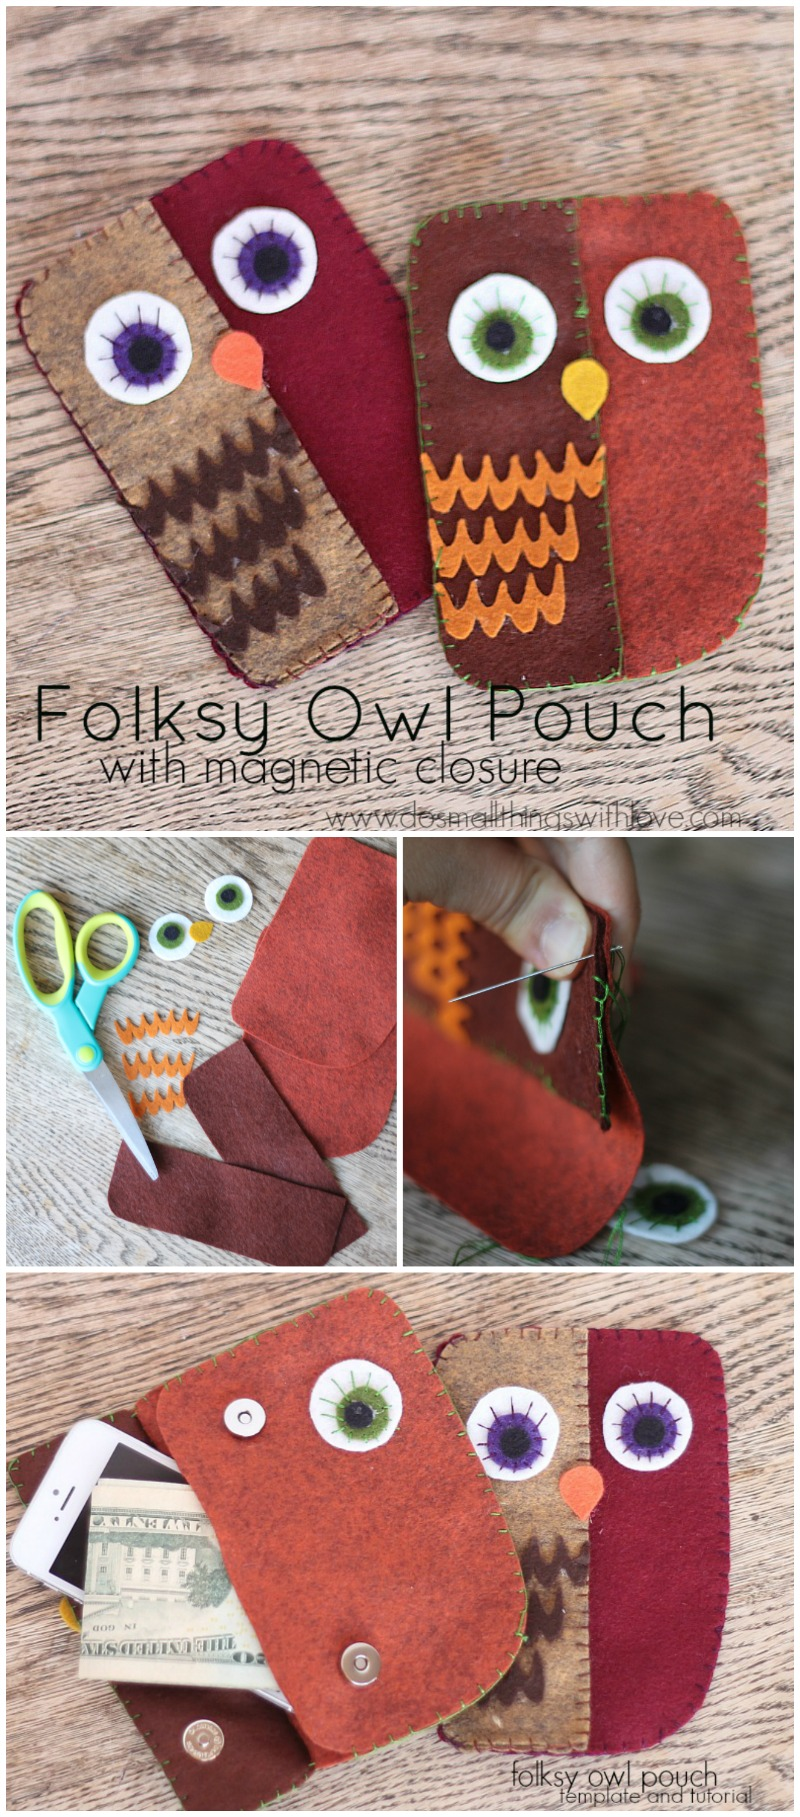 folksy owl pouch--full tutorial and FREE template!